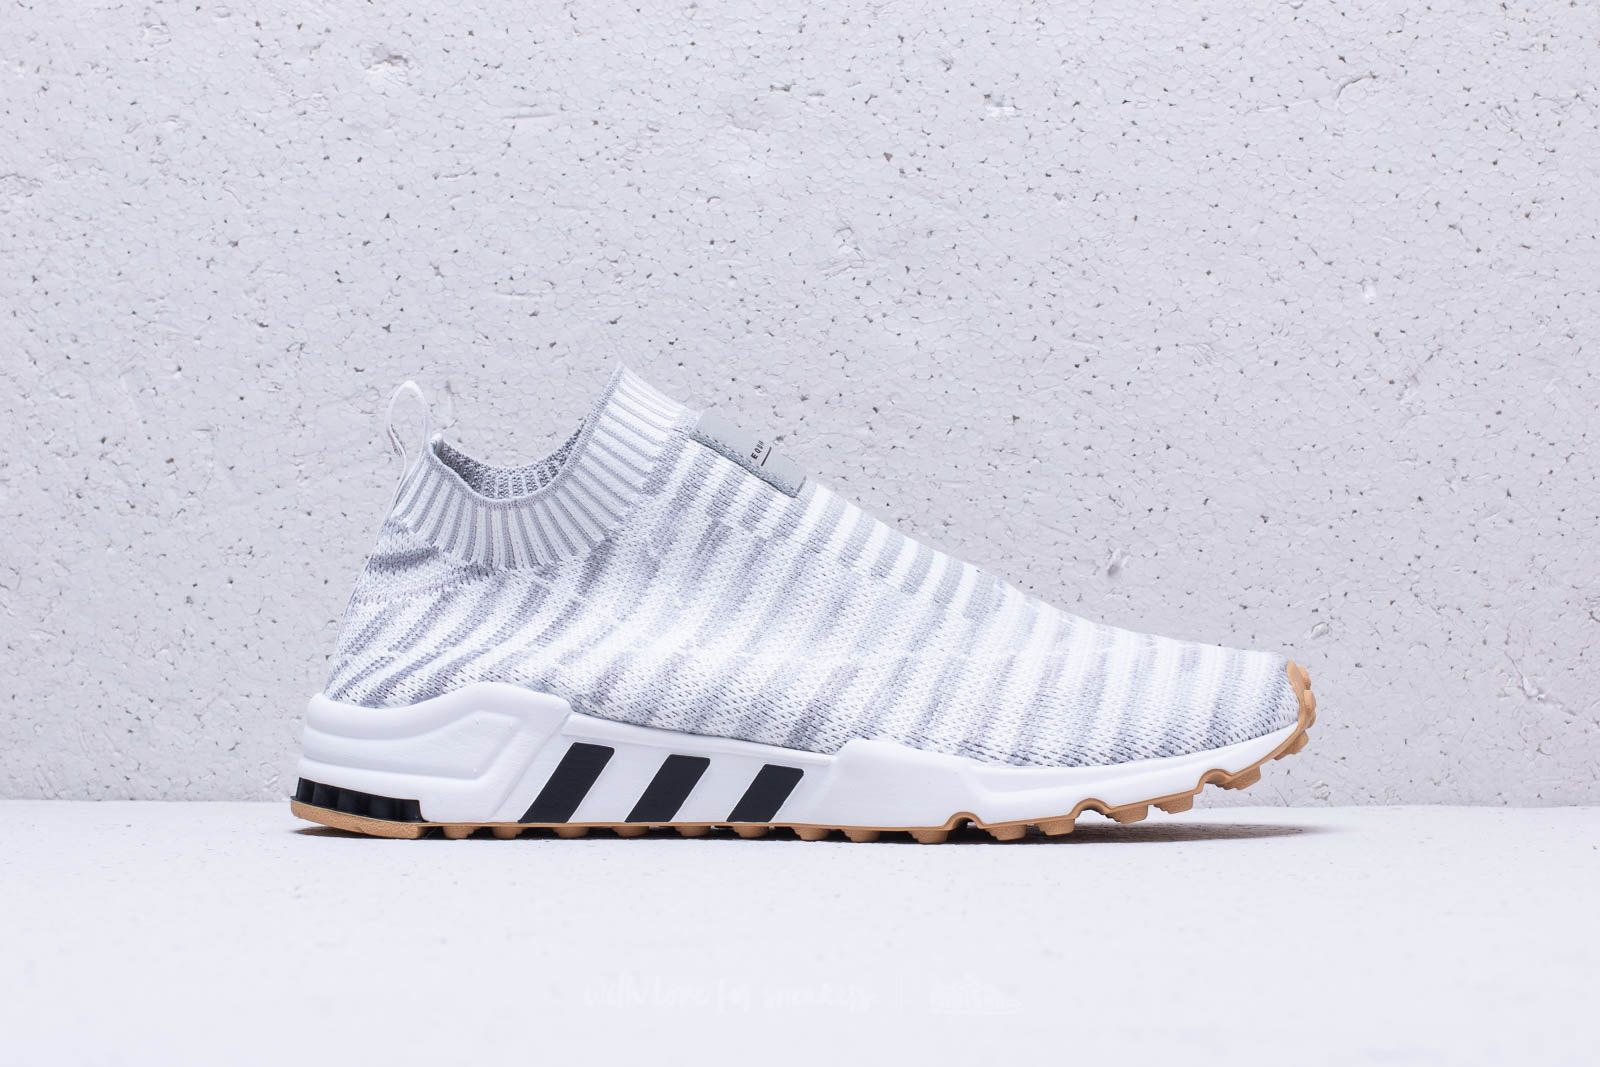 e07ddeadee adidas EQT Support SK Primeknit W Ftw White  Crystal White  Gum at a great